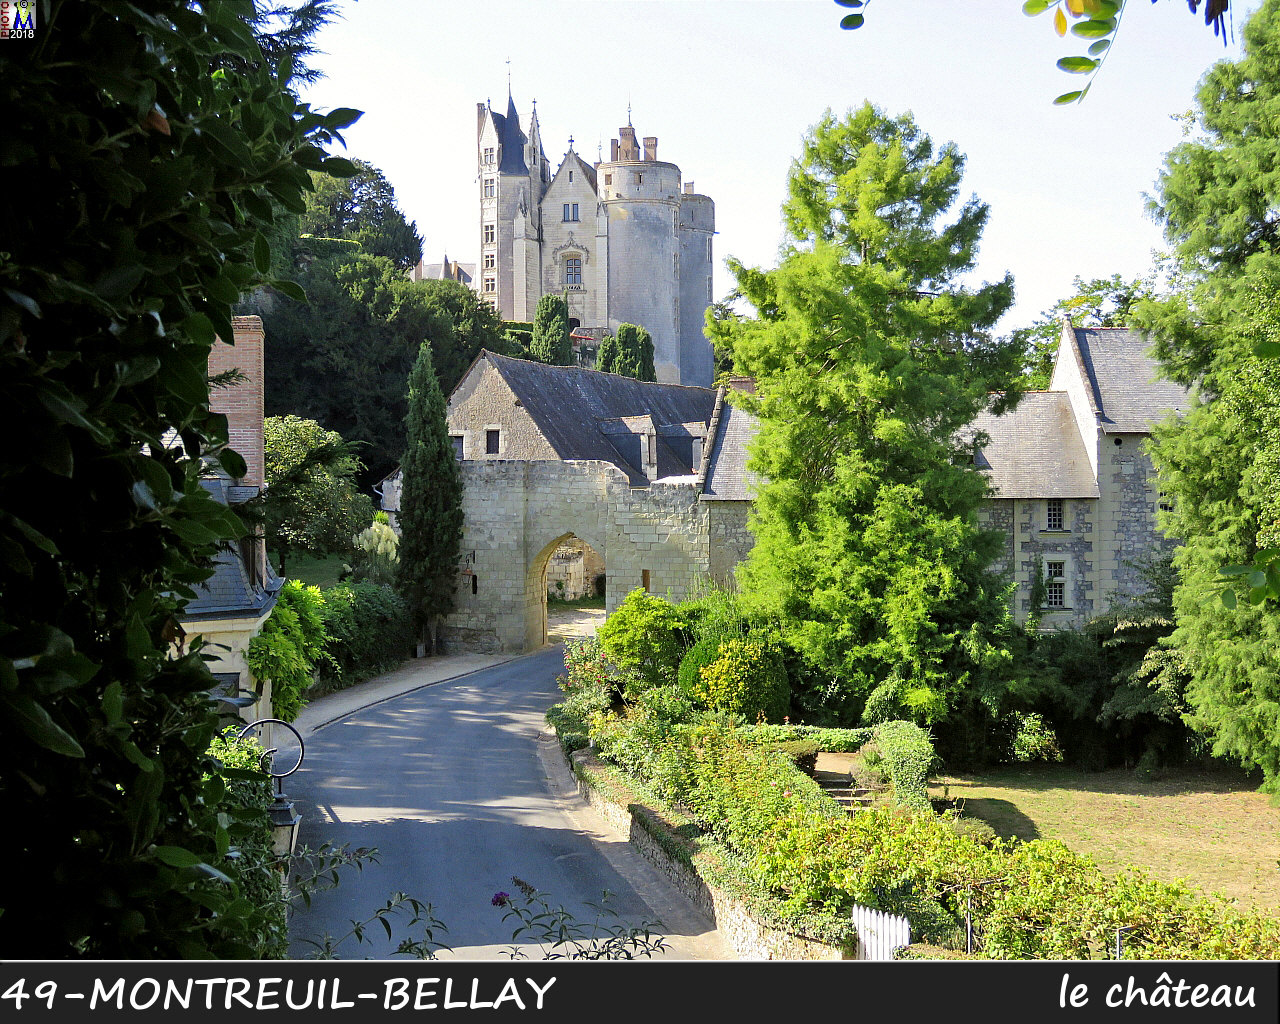 49MONTREUIL-BELLAY_chateau_1004.jpg